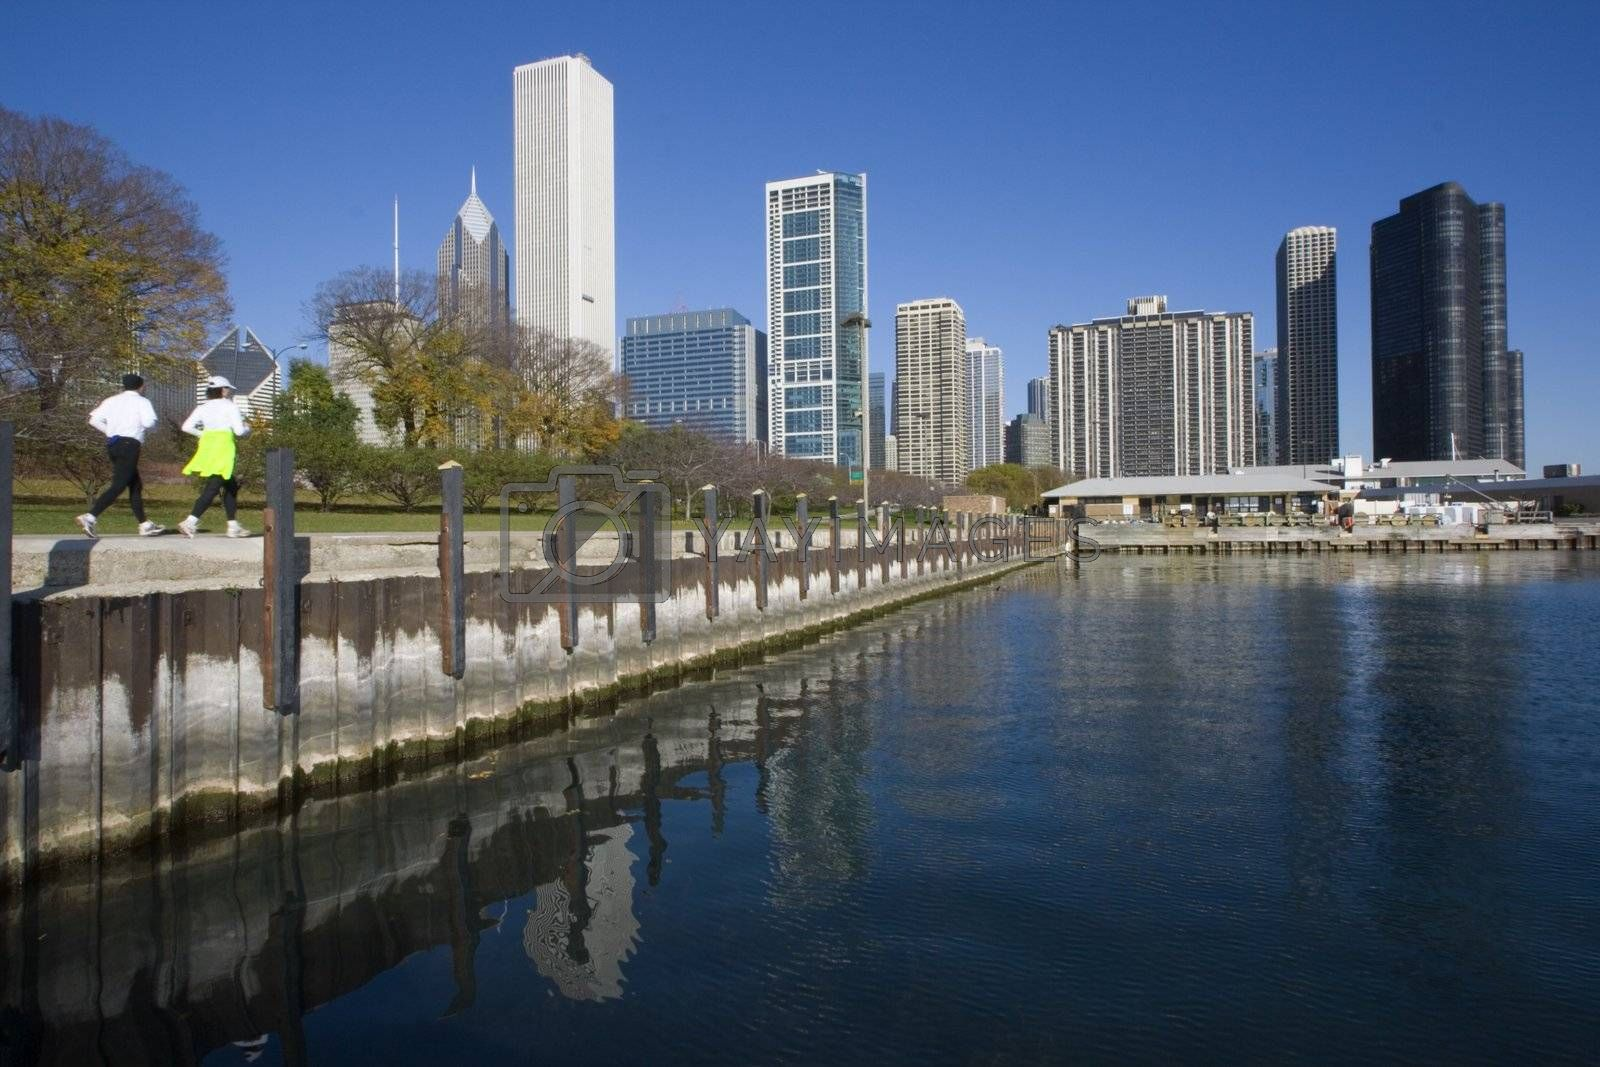 Morning Jogging in Chicago, Illinois.